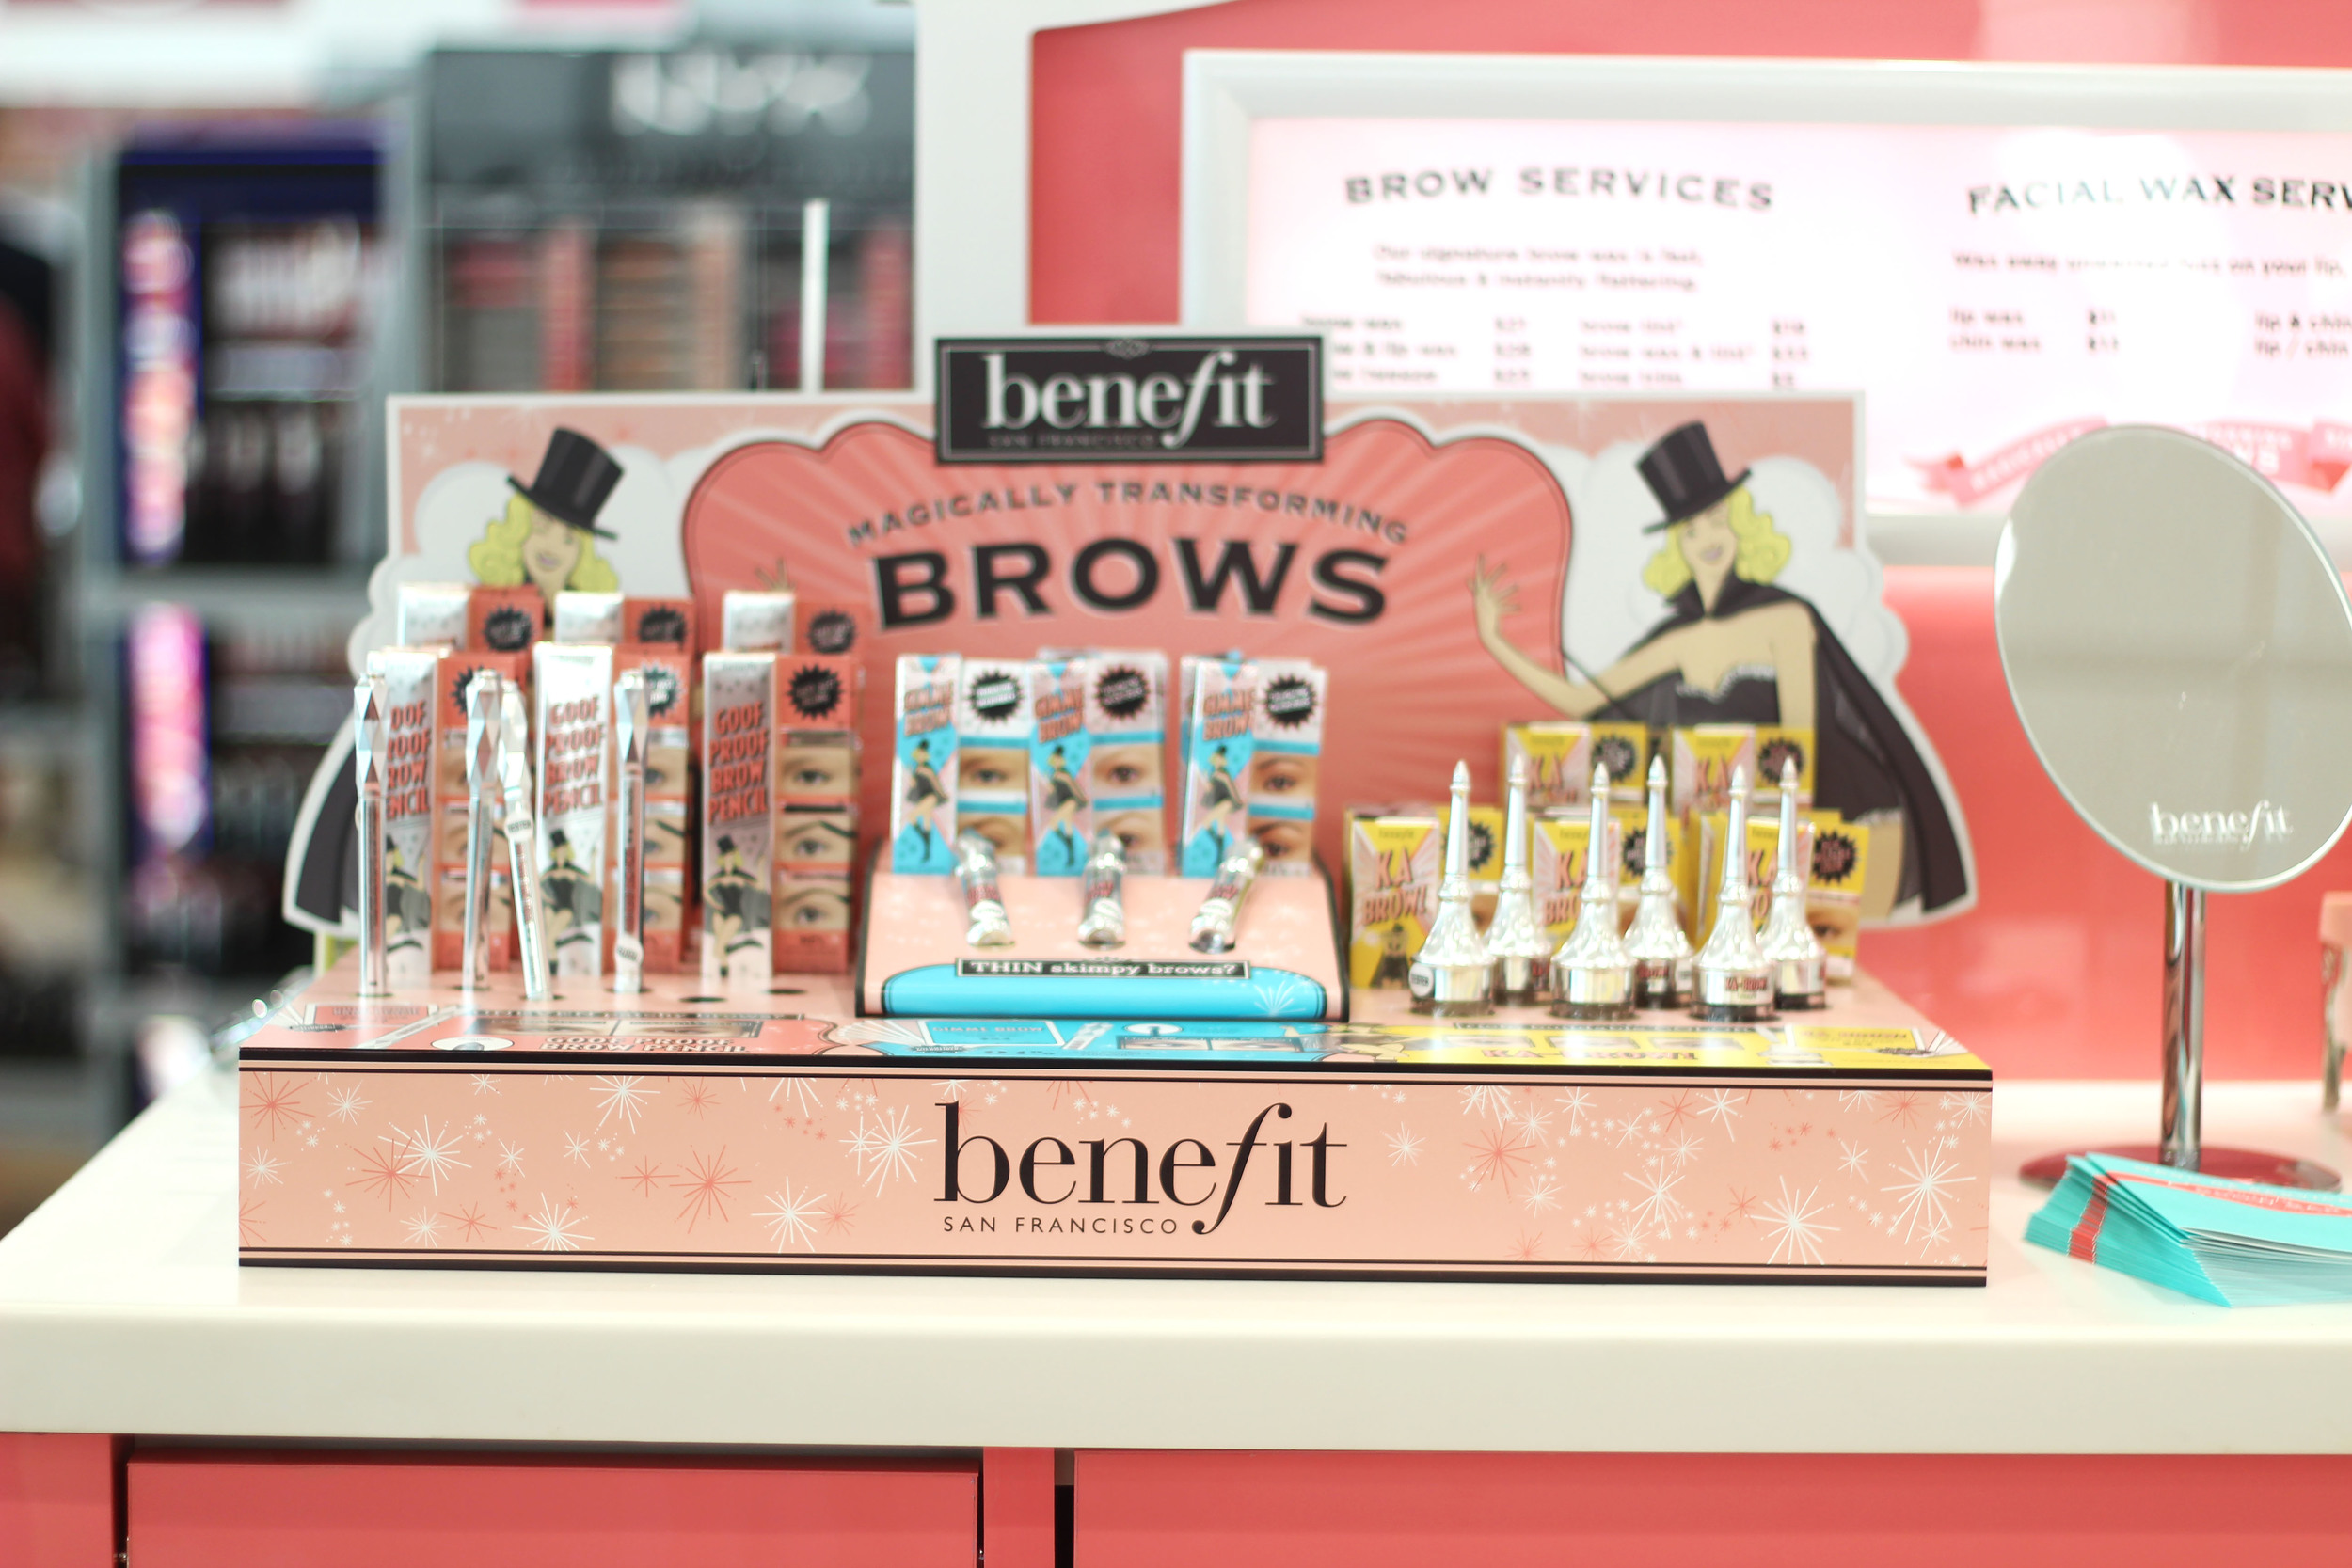 Benefit brow products that are used during the services offered.